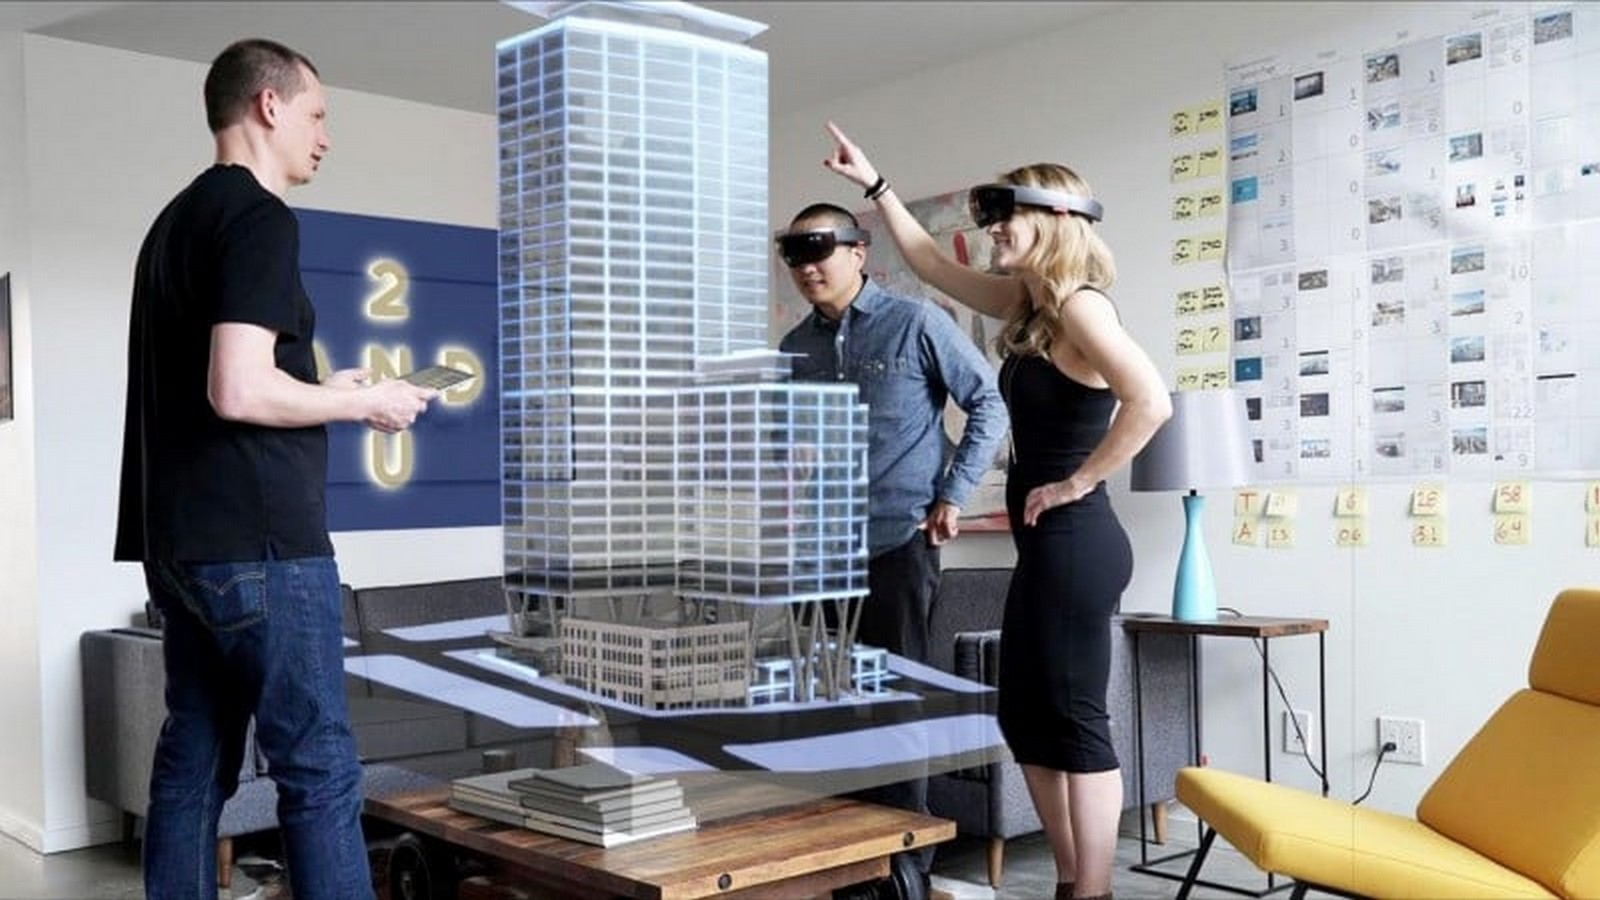 Relevance of Virtual reality in architecture- why do we need it?- Sheet7